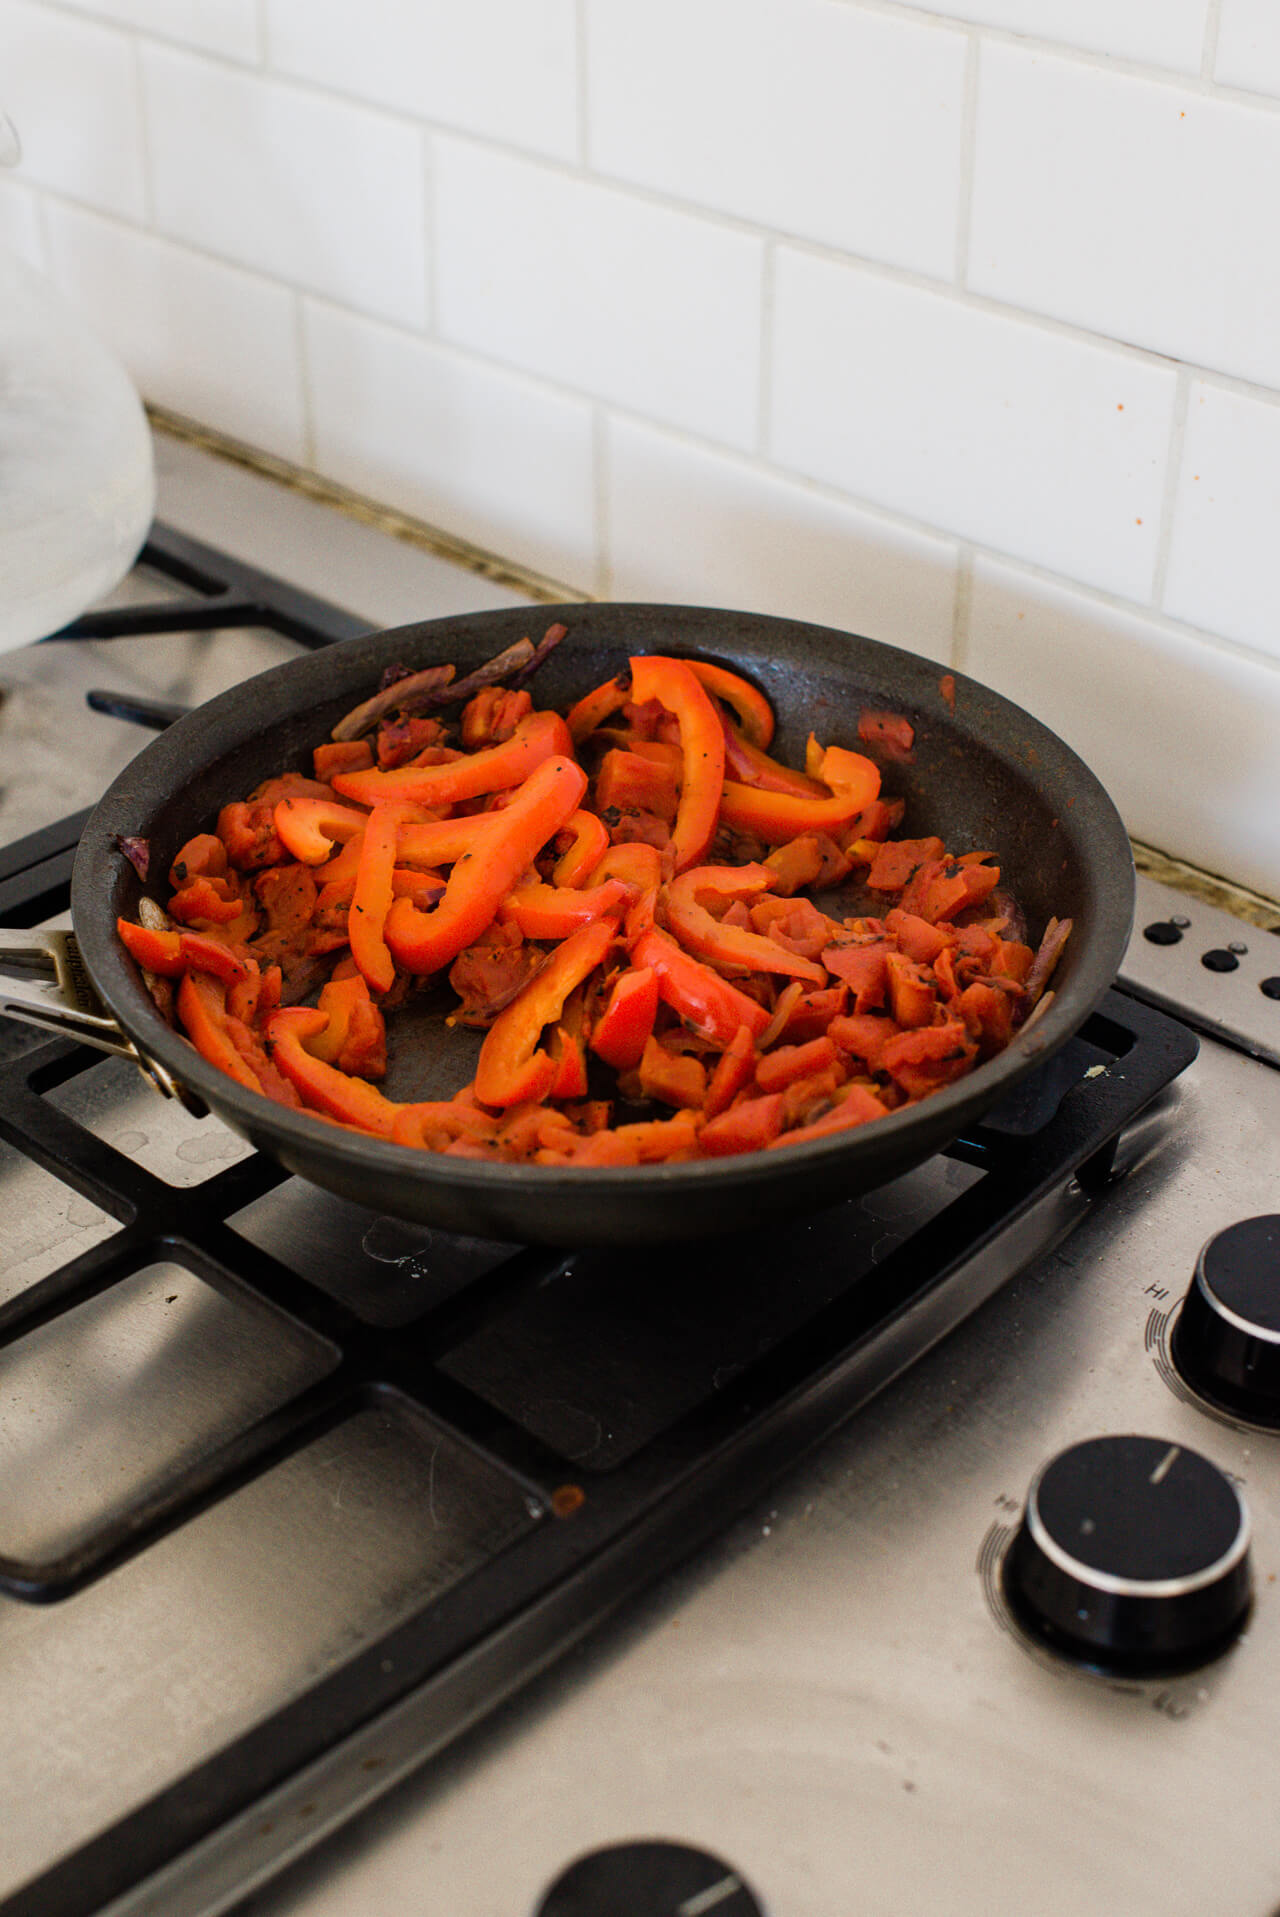 These vegetarian fajitas are so easy to make and are family friendly!